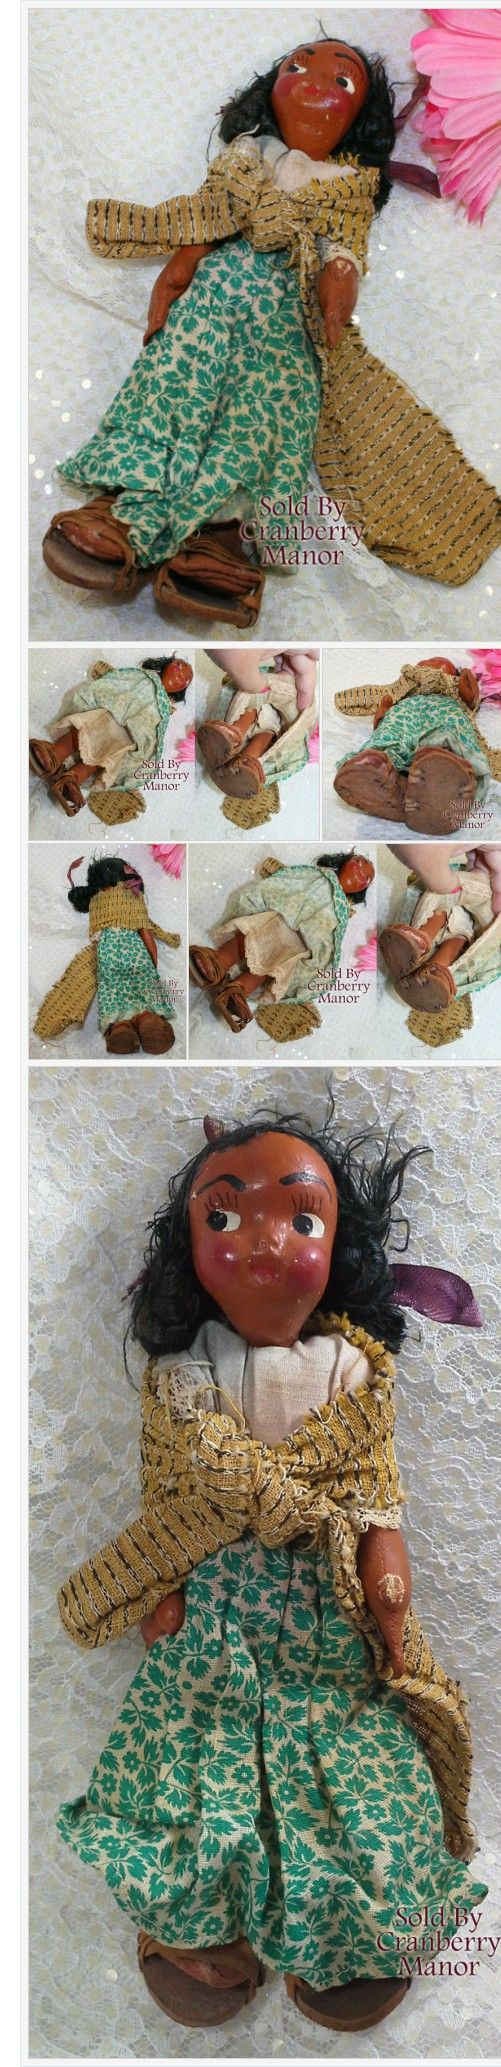 Oil Cloth & Wood Toy Doll Mexican Cultural Souvenir Vintage Mid Century 1950s Mexico Folk Art Gift #Toy #Doll #Mexican #Vintage #MidCentury #Mexico #FolkArt #Gift http://cranberry-manor.com/oil-cloth-wood-toy-doll-mexican-cultural-souvenir-vintage-mid-century-1950s-mexico-folk-art-gift/